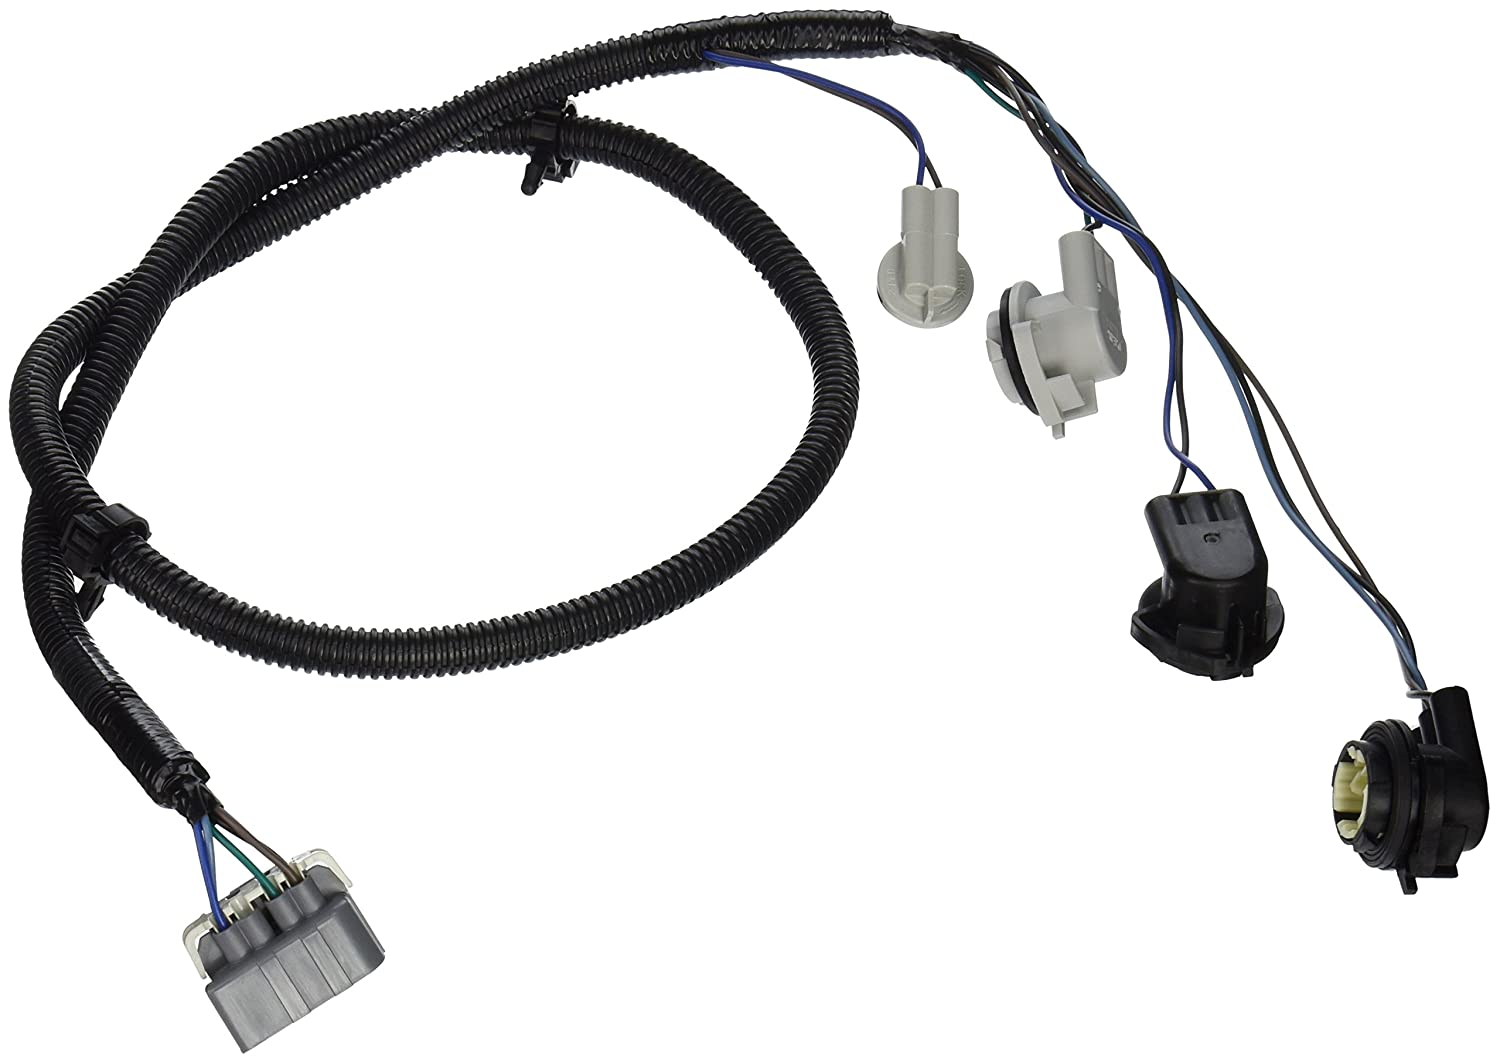 81sfkEXtmvL._SL1500_ amazon com genuine gm 16531401 tail lamp wiring harness automotive GM Turn Signal Wiring at crackthecode.co